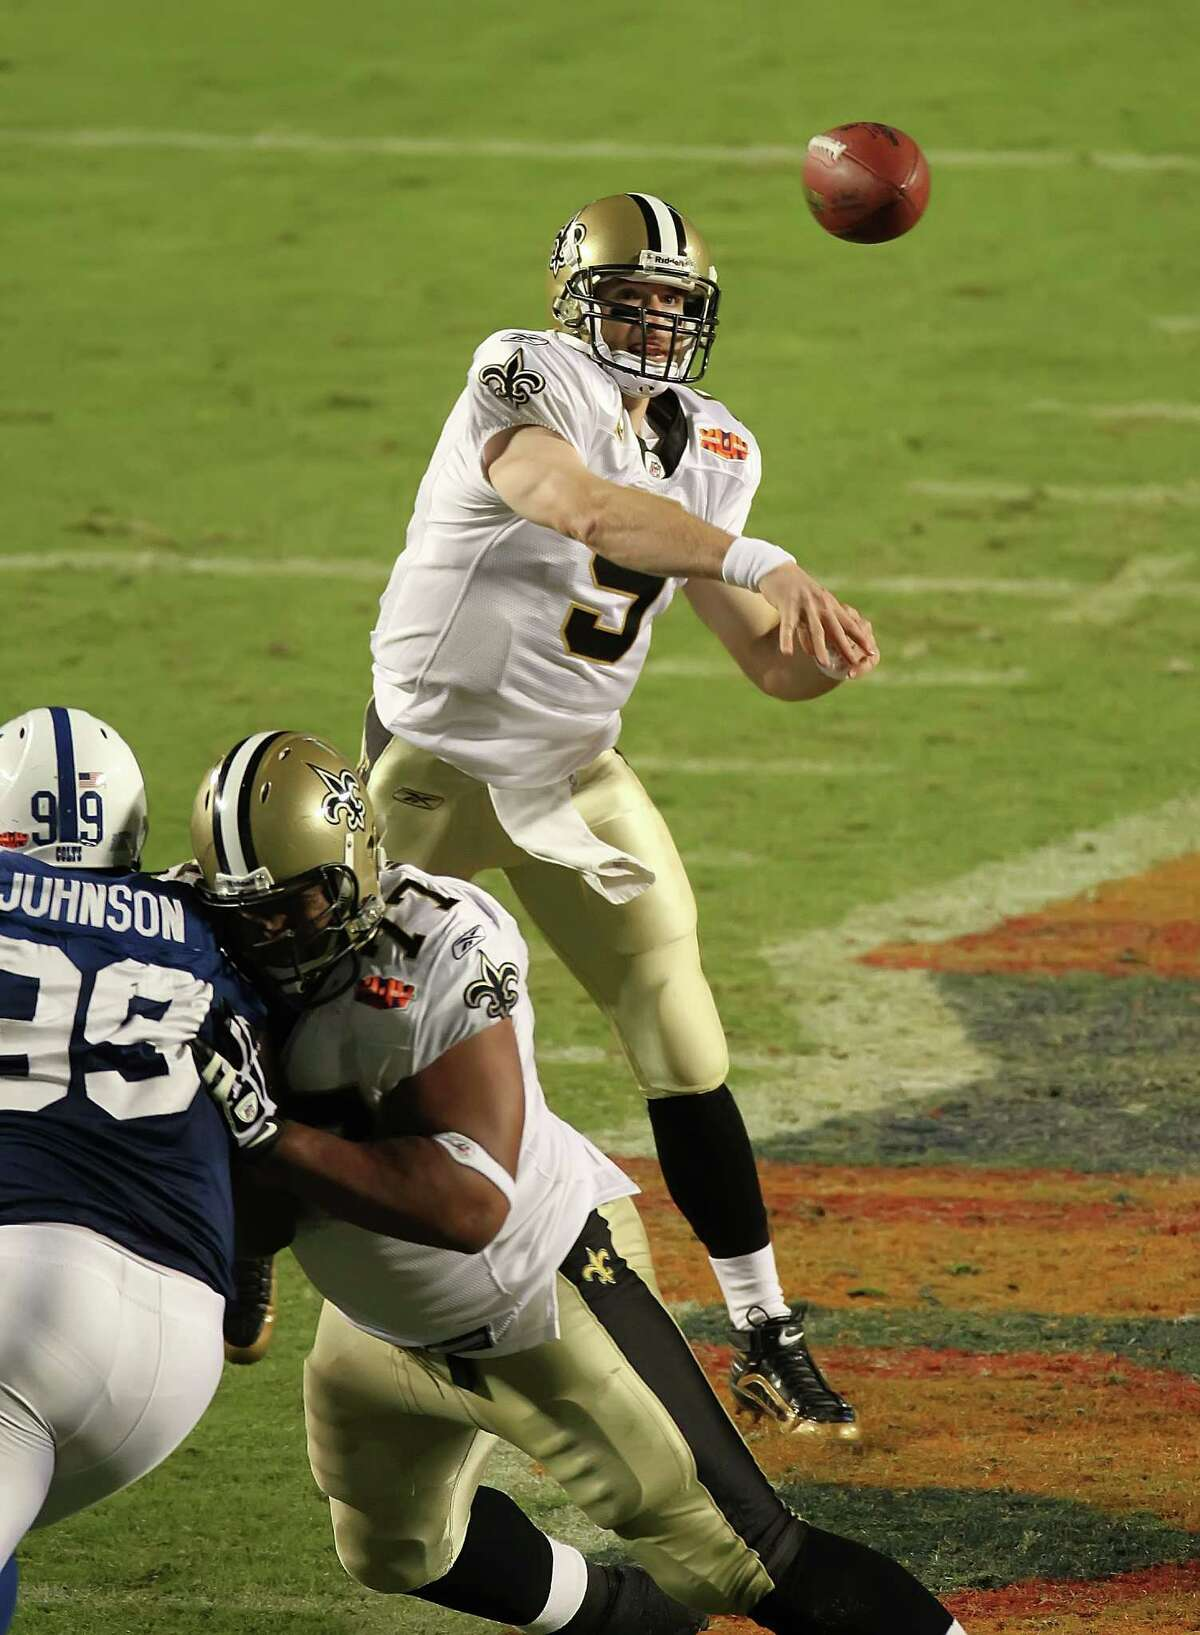 New Orleans Saints' Drew Brees was named the game's MVP as the New Orleans Saints beat the Indianapolis Colts 31-17, Sunday, February 7, 2010 in Super Bowl XLIV at Sun Life Stadium in Miami Gardens, Florida. (Terry Gilliam/MCT)